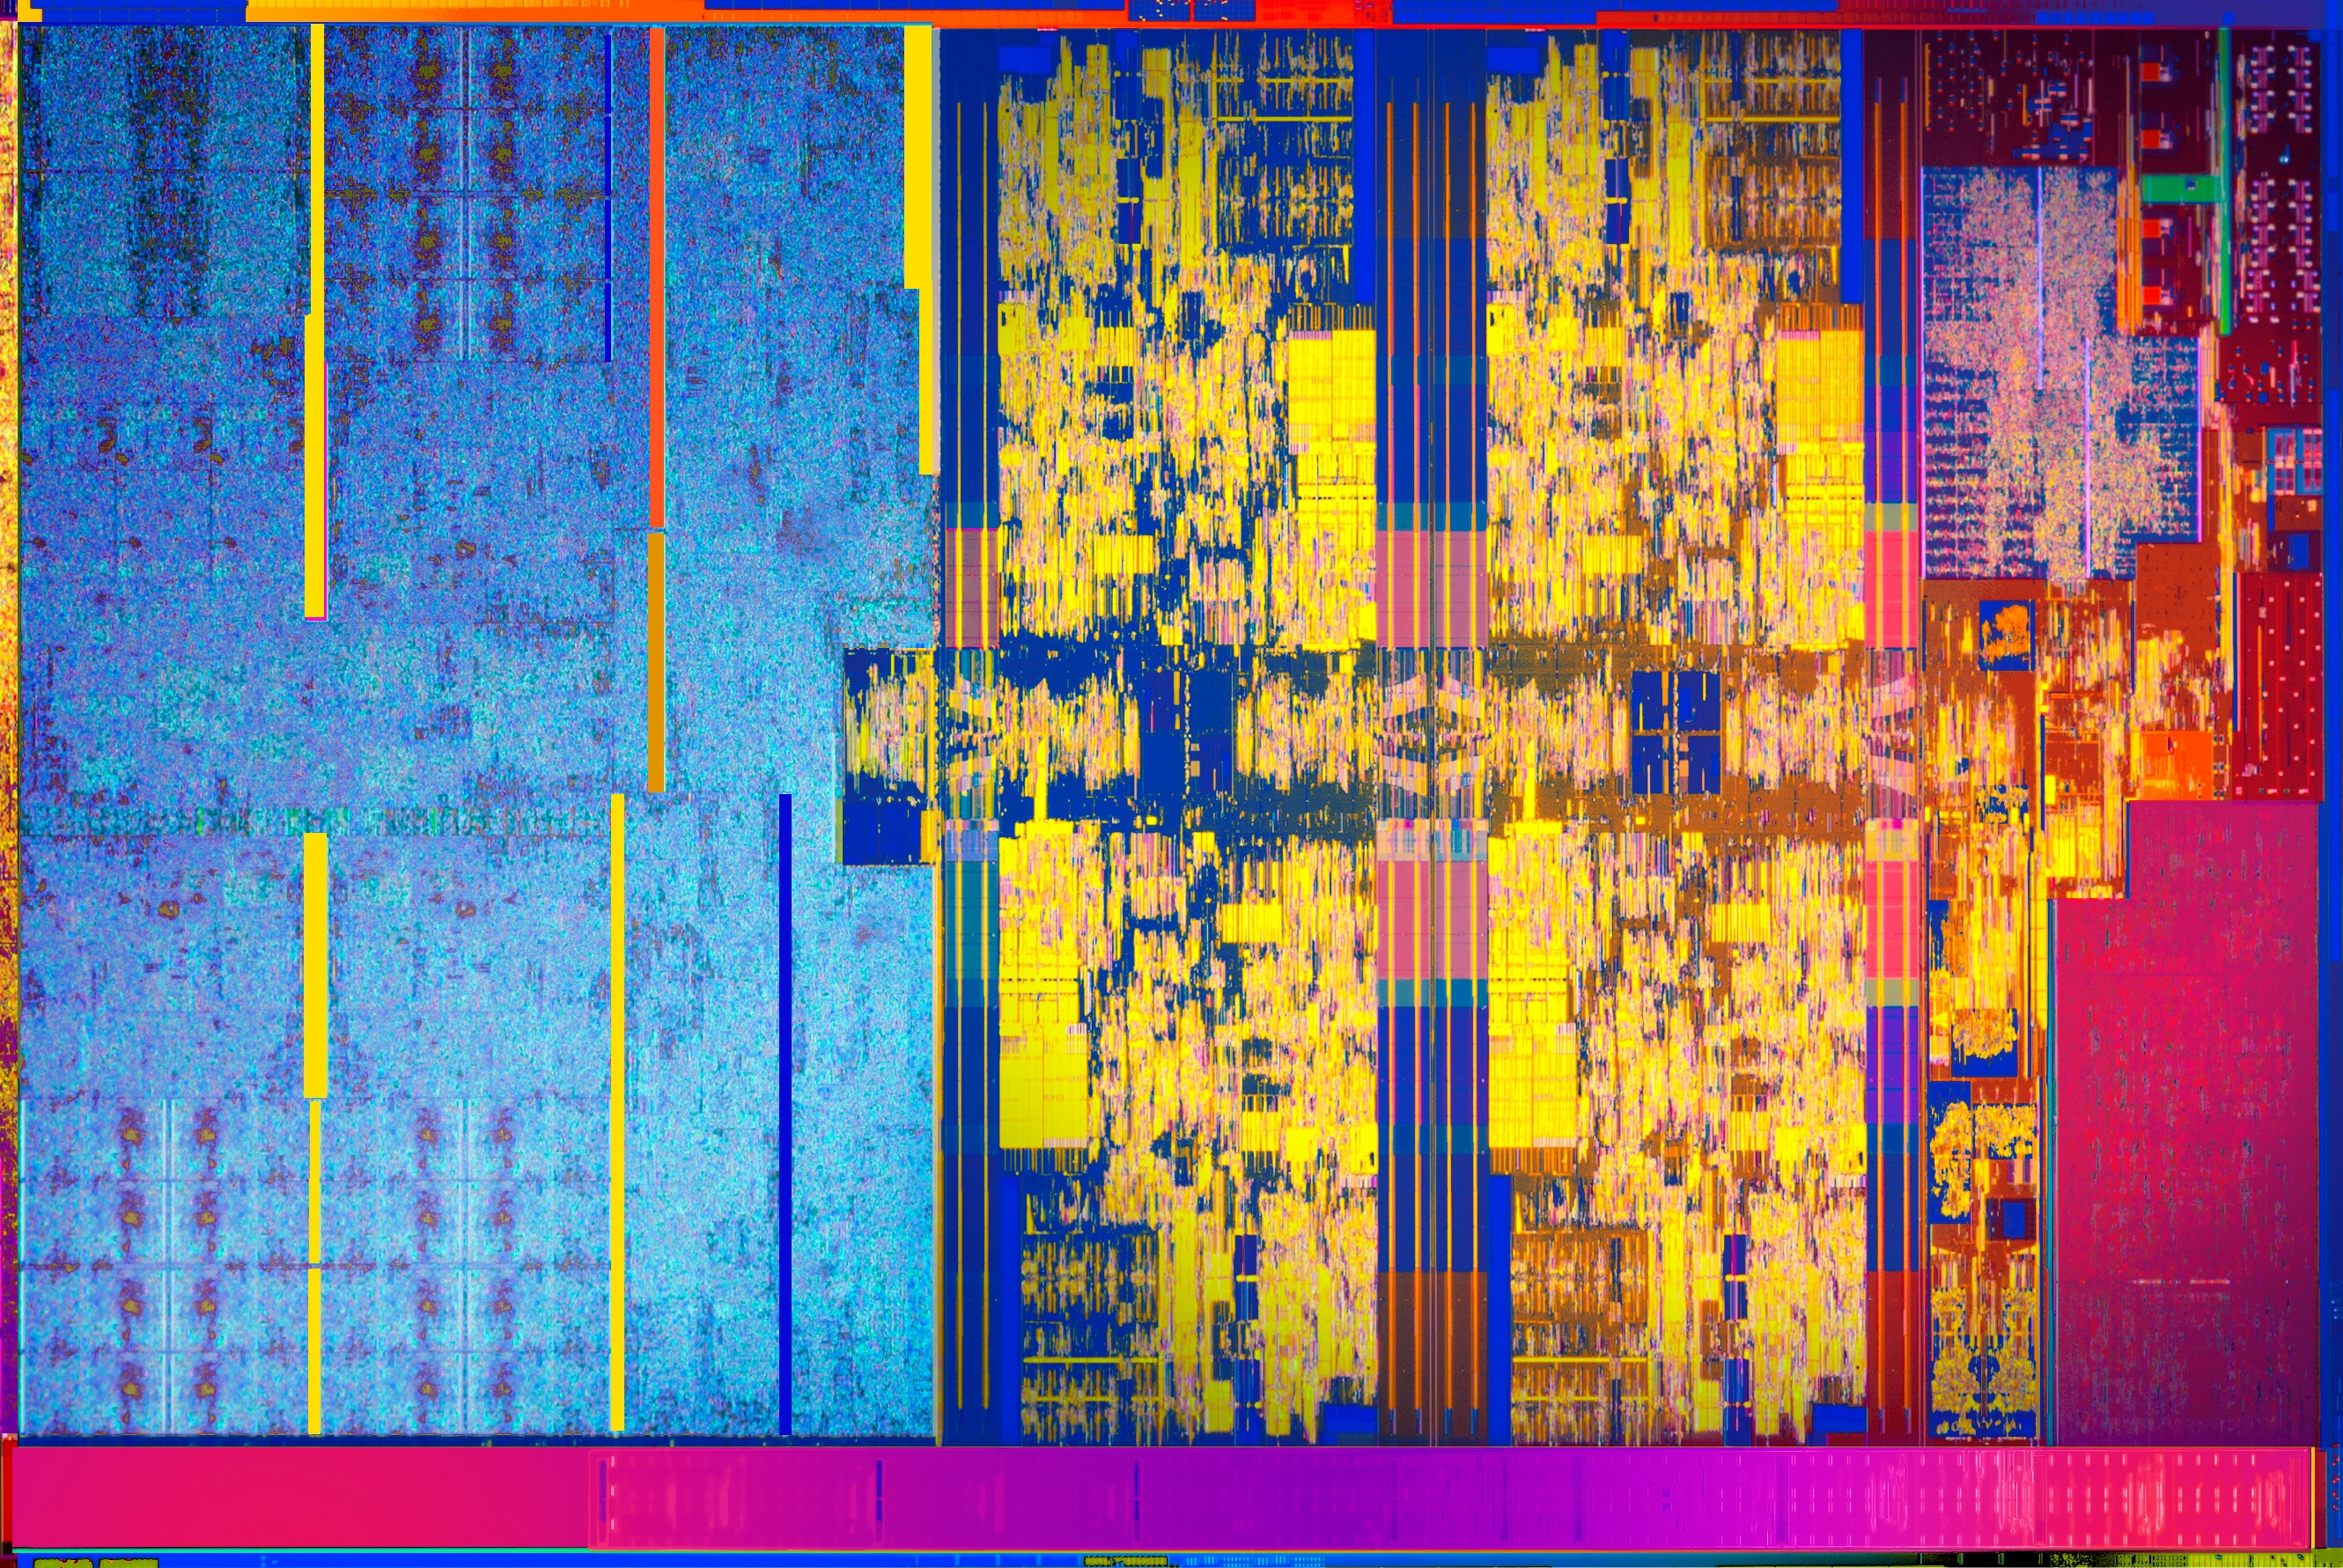 8th Gen Intel Core U-series processor die